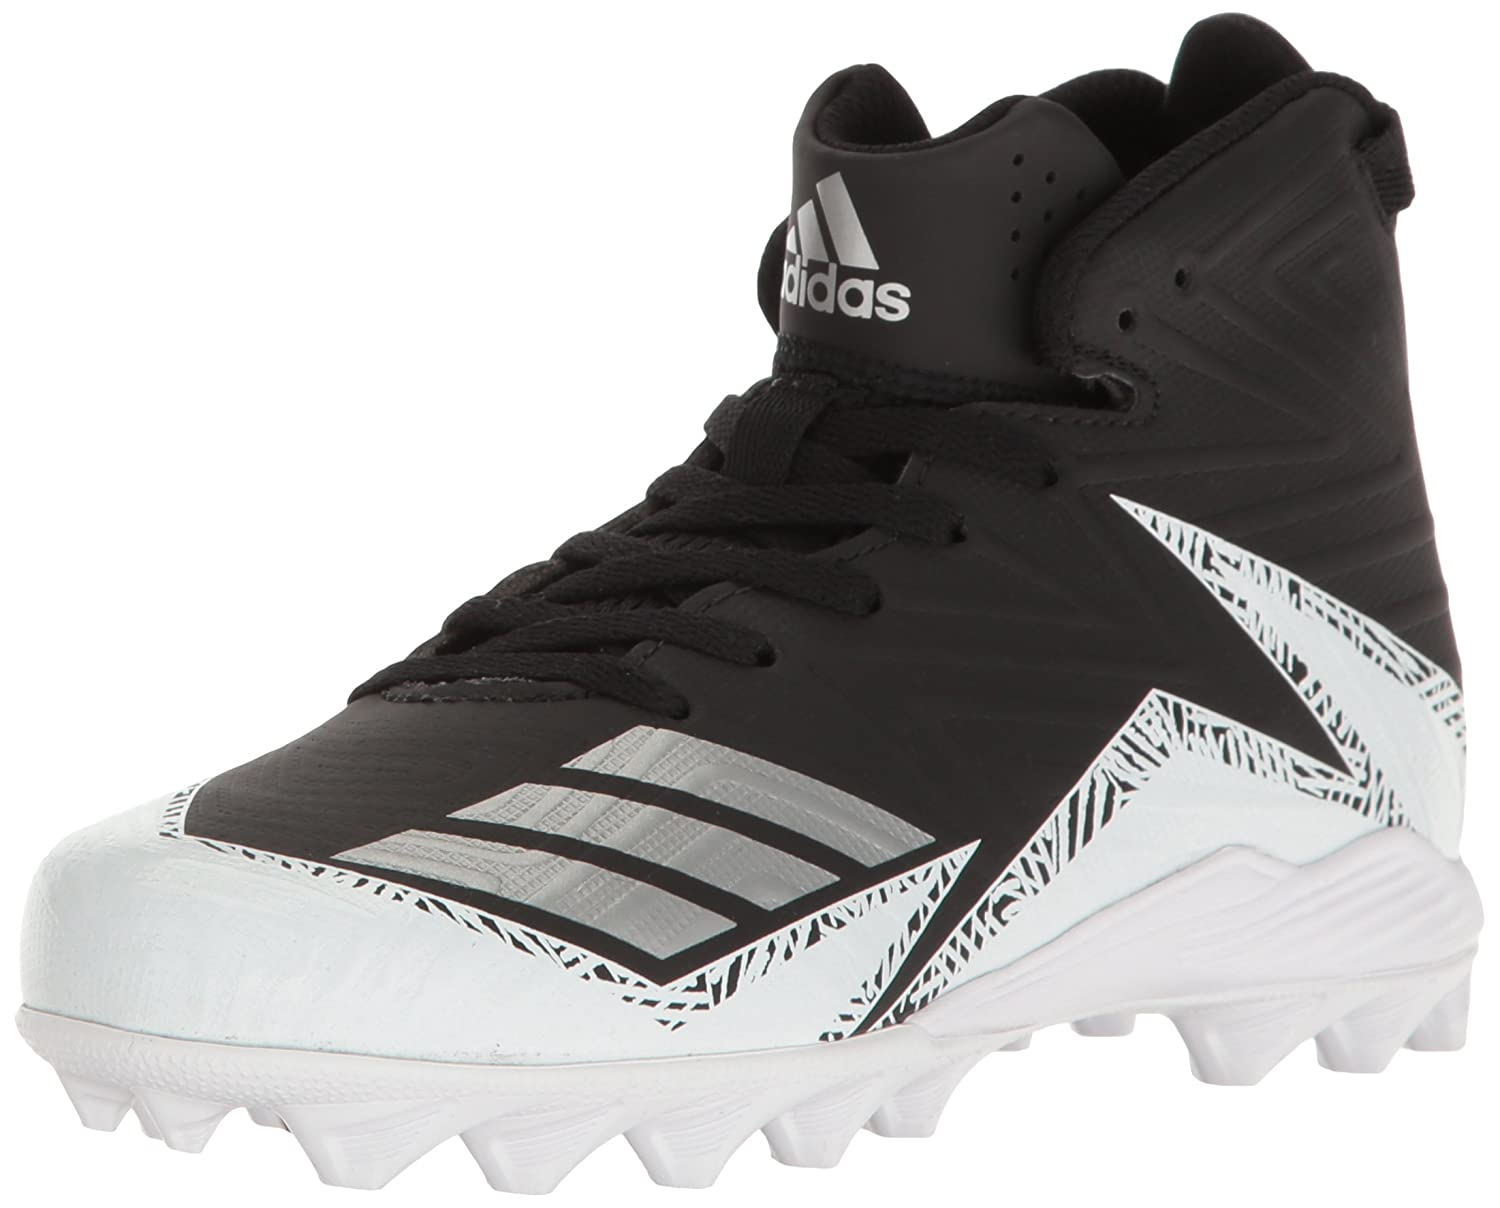 adidas Men's Freak X Carbon Mid Football Shoe BY3881